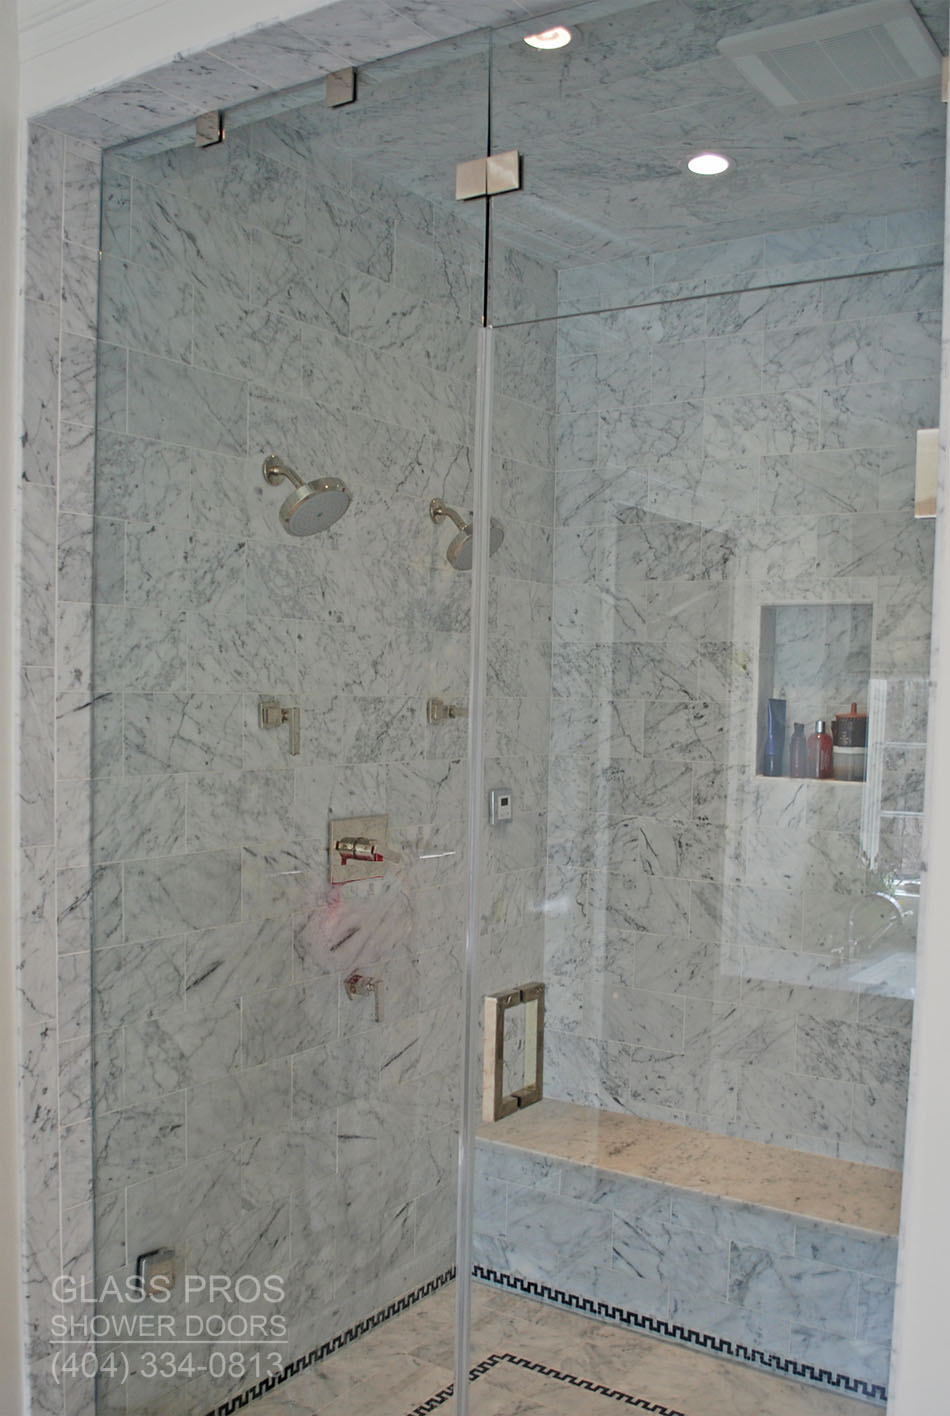 Glass Pros Of Cumming Frameless And Semi Framed Shower Doors